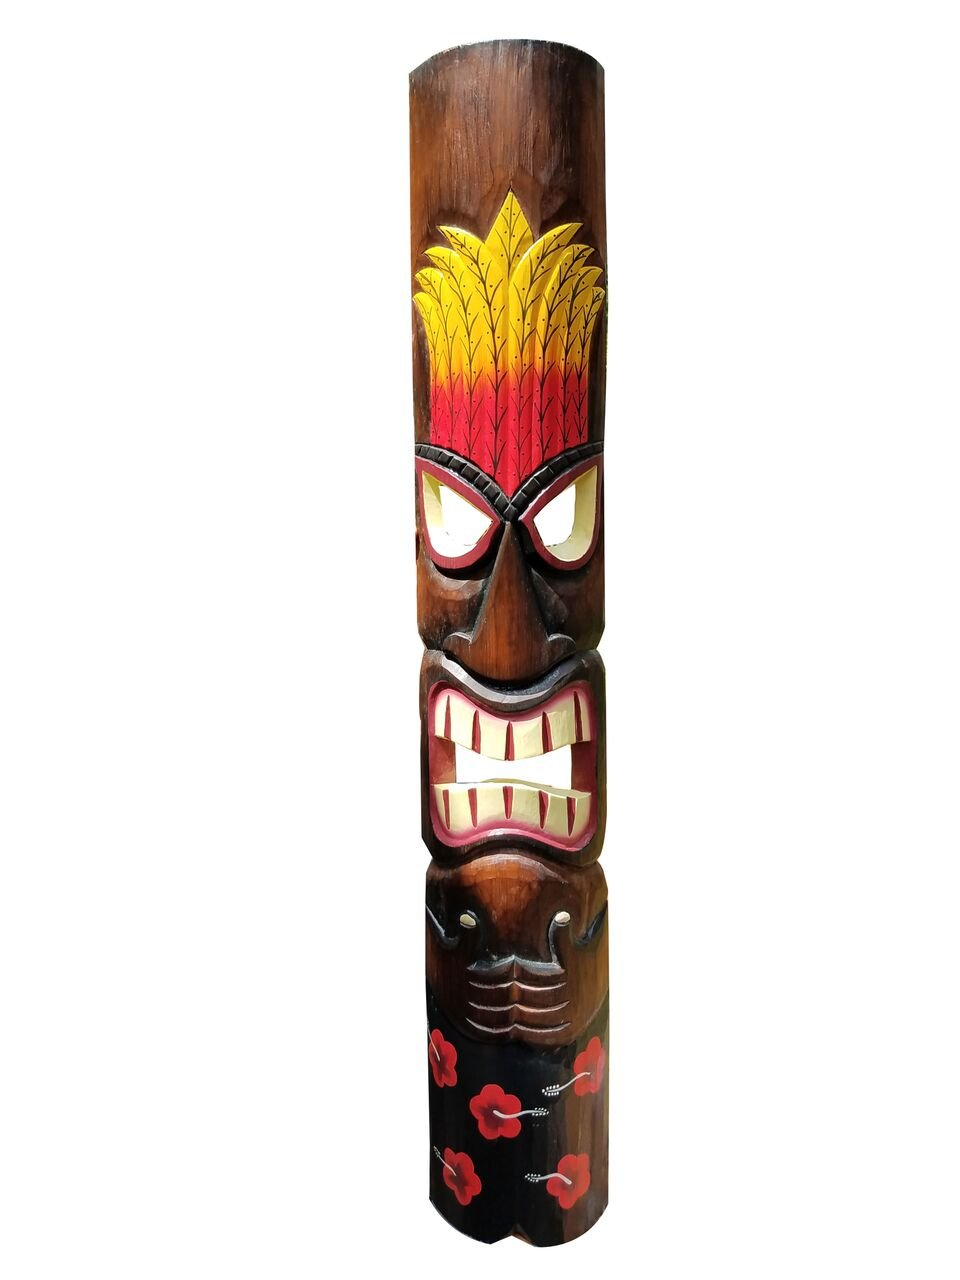 39.5'' Vibrant Handcarved & Painted Wood ''Black Shorts With Red Flowers'' Tiki Mask! by All Seas Imports